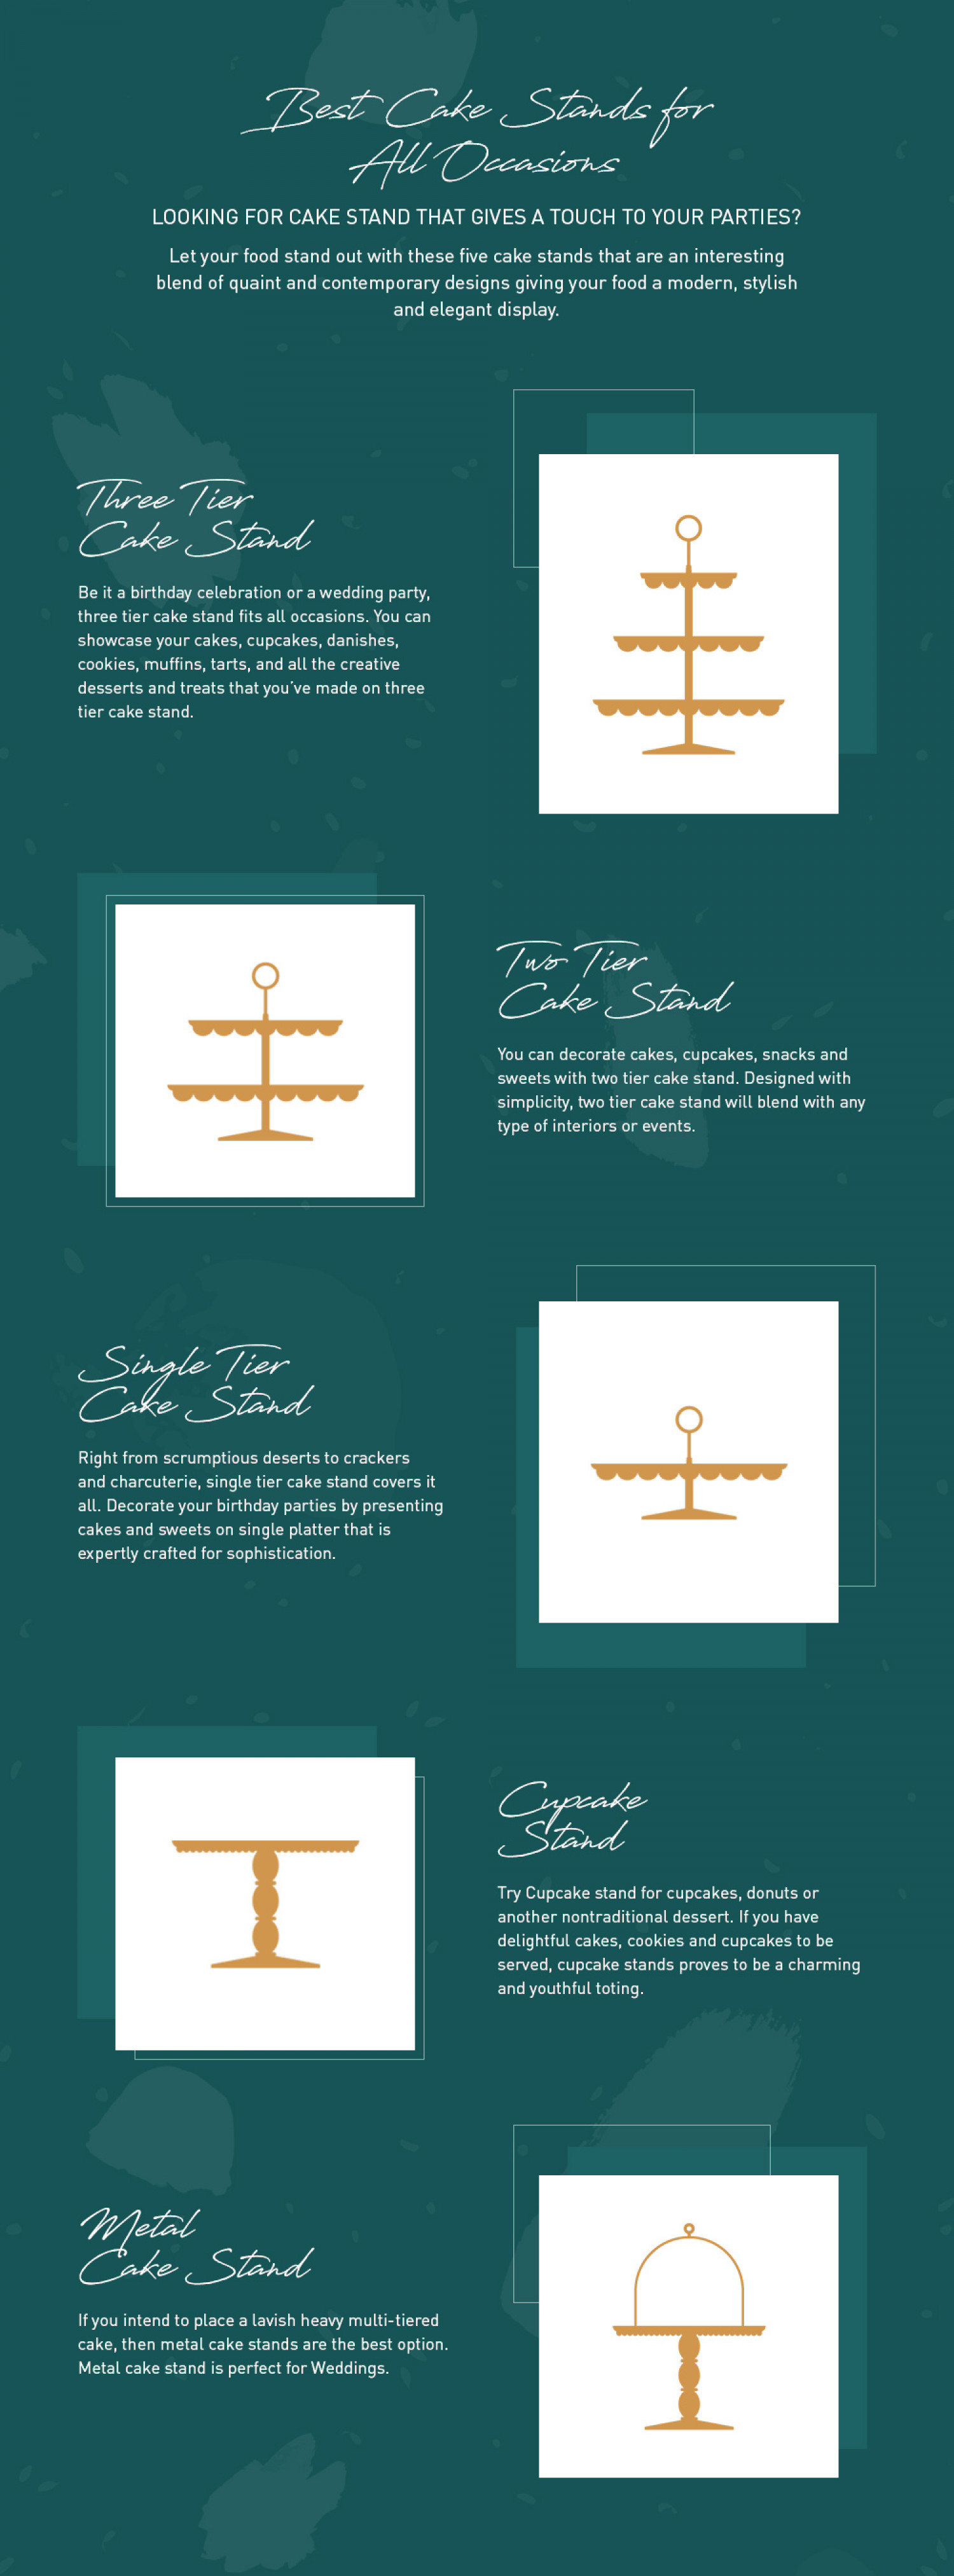 Best Cake Stands for All Occasions Infographic